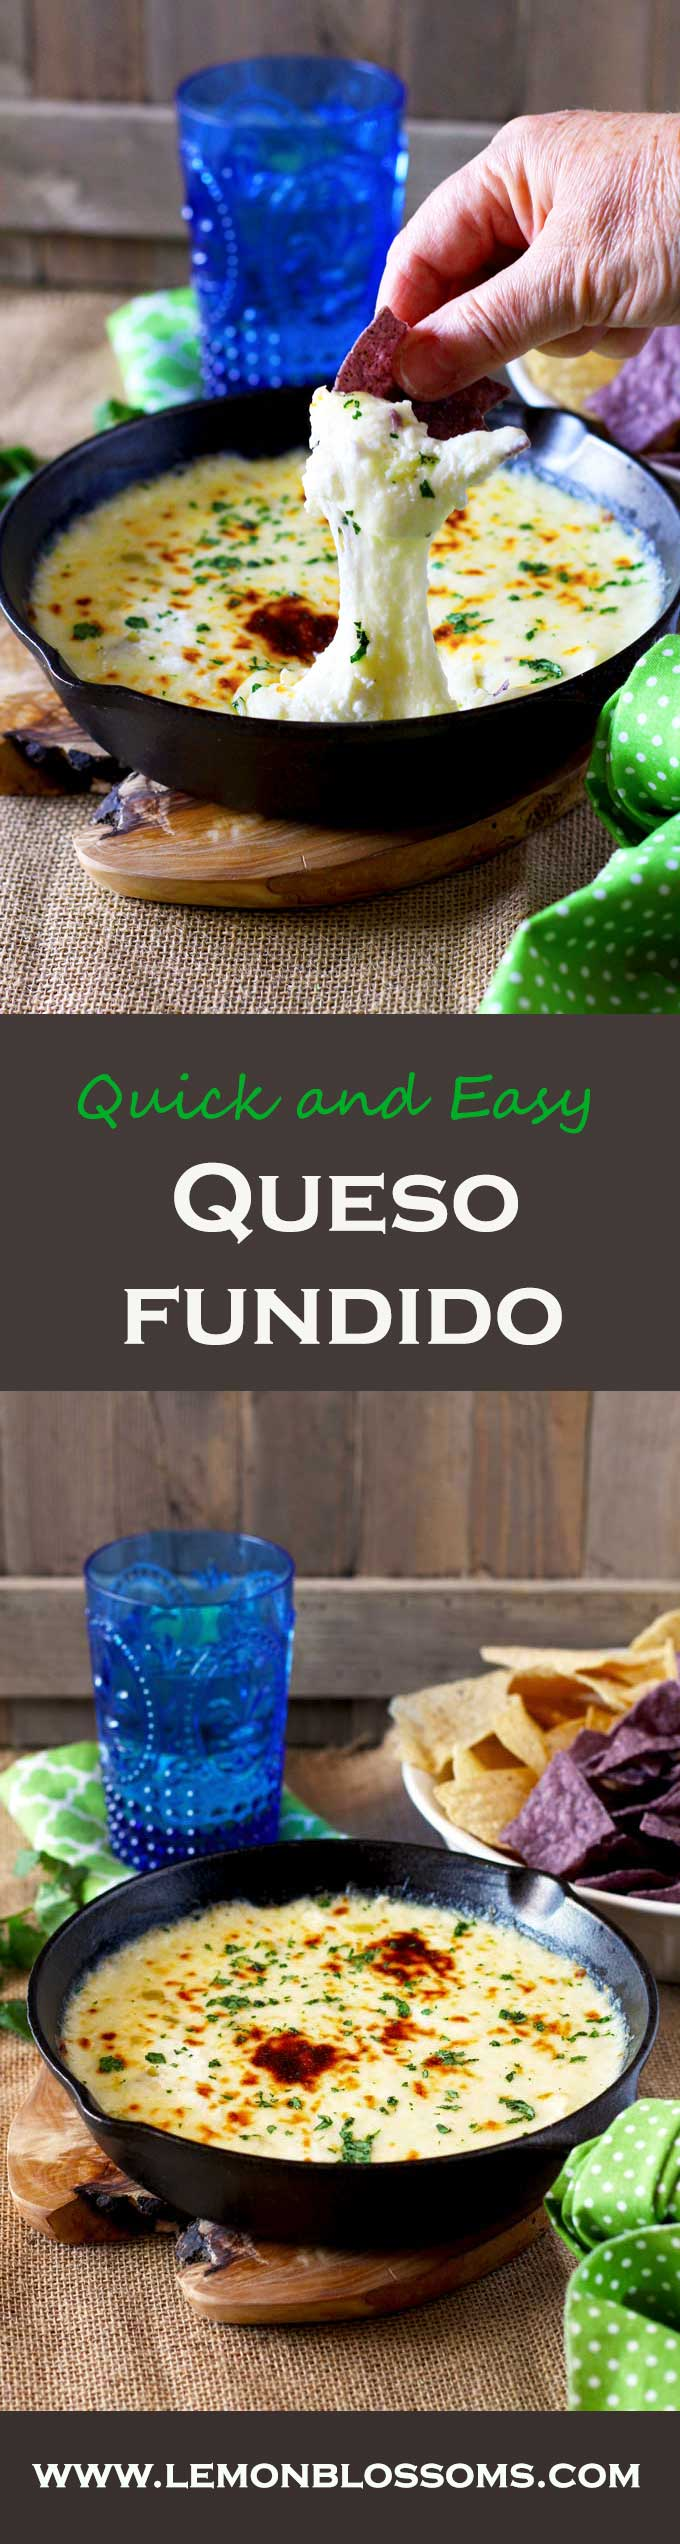 This Queso Fundido dip is gooey, melty and delicious. Crumbled goat cheese takes this easy-to-make dip to the next level!